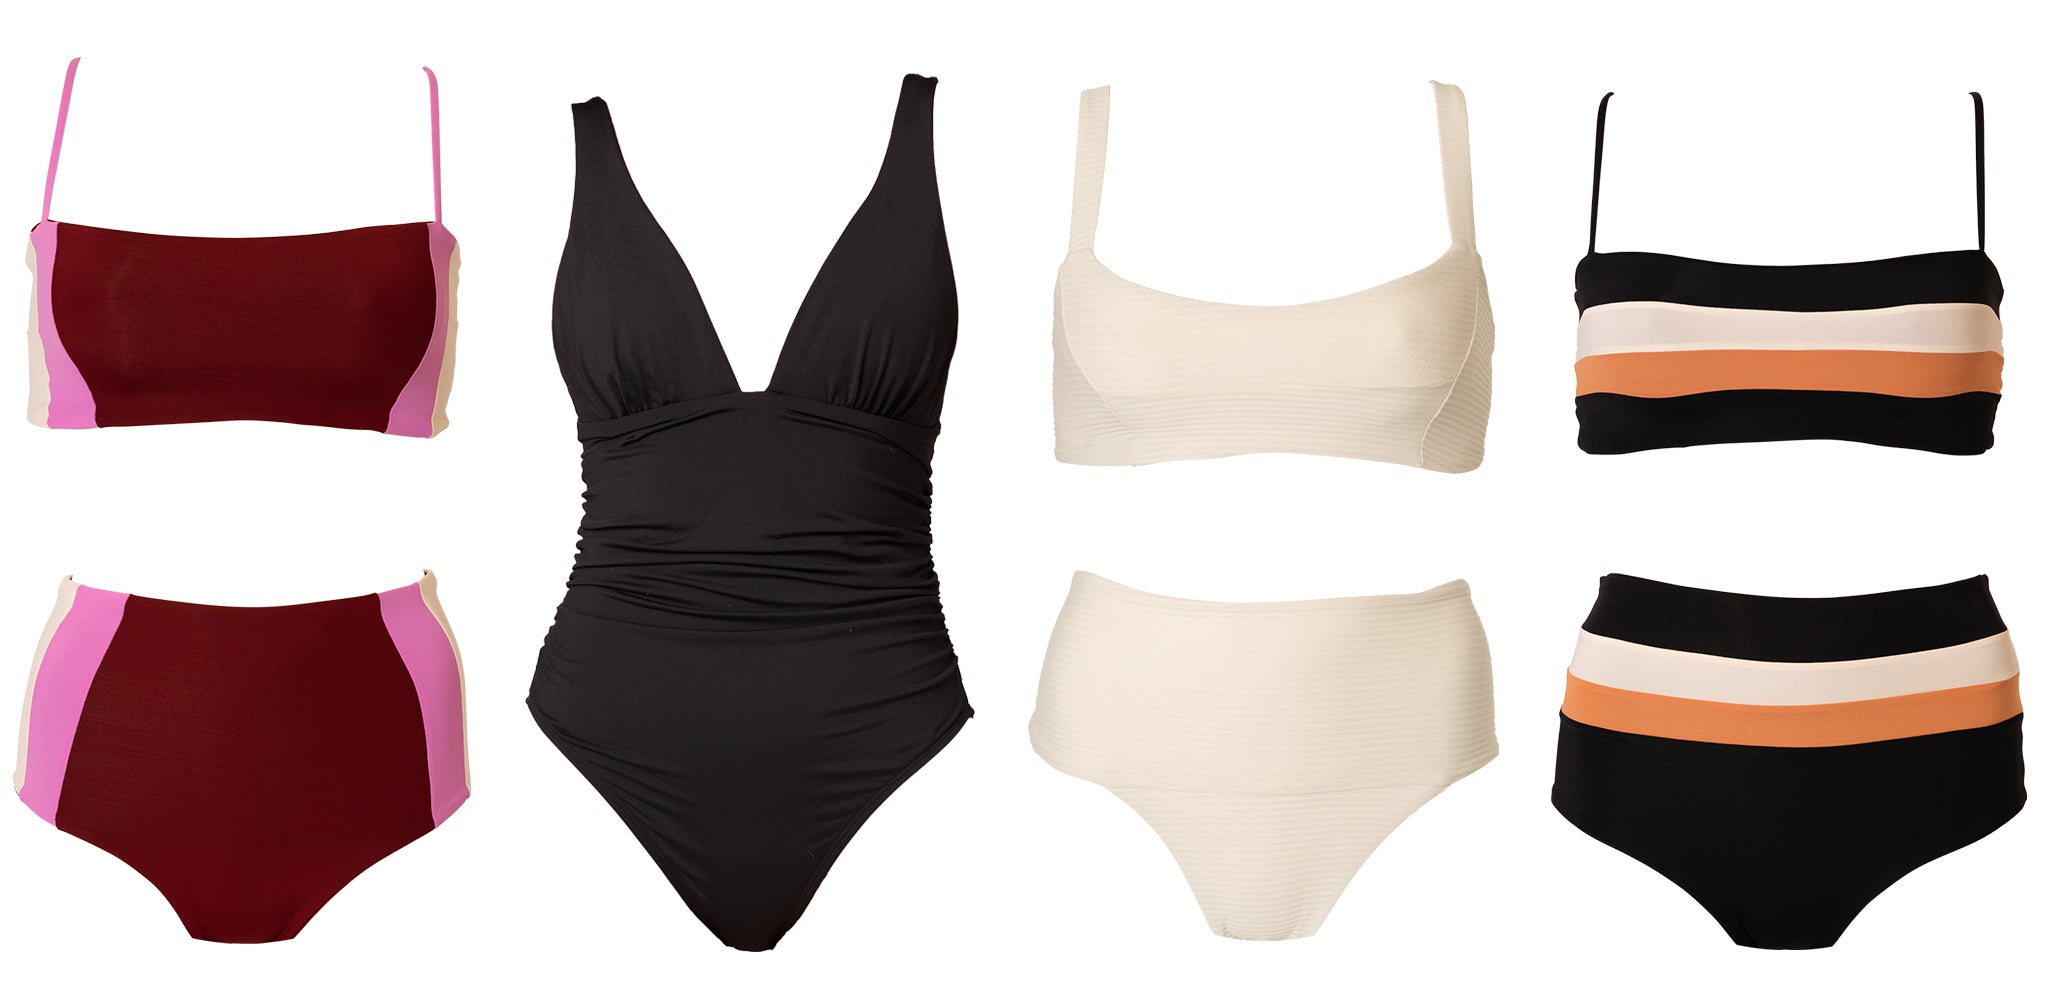 L*Space swimsuits that are flattering for curvy body types